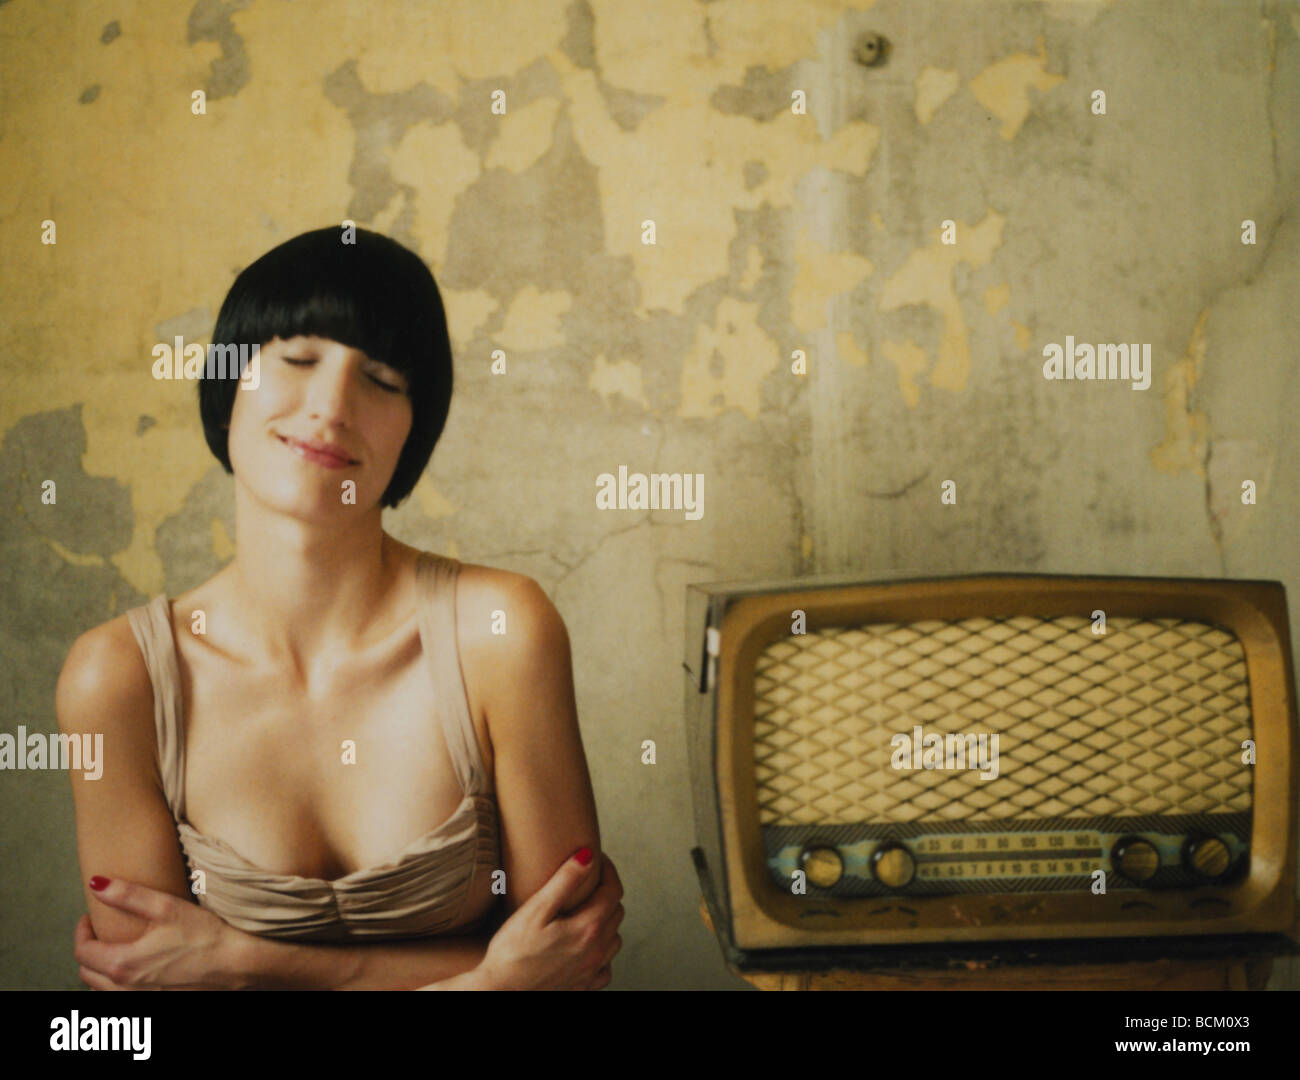 Woman sitting next to old-fashioned radio, arms folded and eyes closed - Stock Image